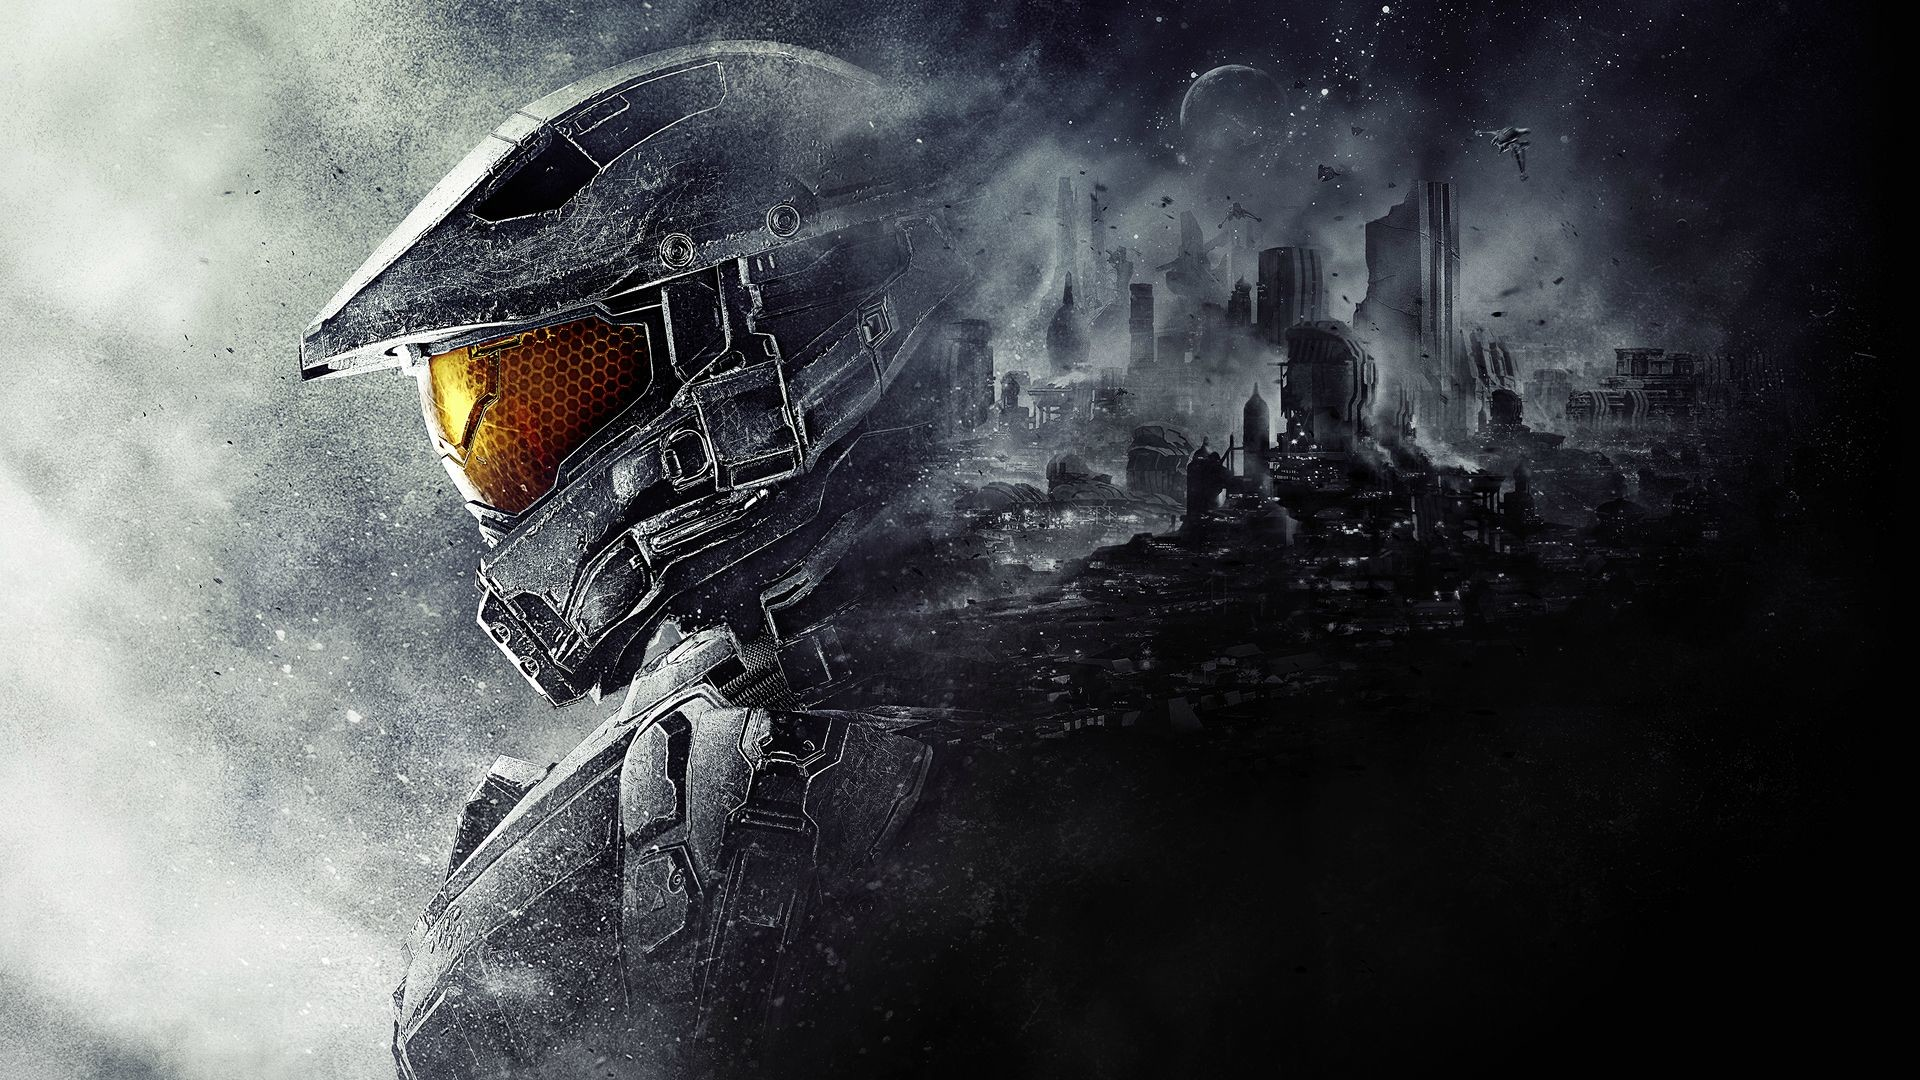 1920x1080 Xbox Master Chief wallpaper by Spectalfrag on DeviantArt Halo Master Chief  Collection Wallpaper Image Gallery - HCPR ...